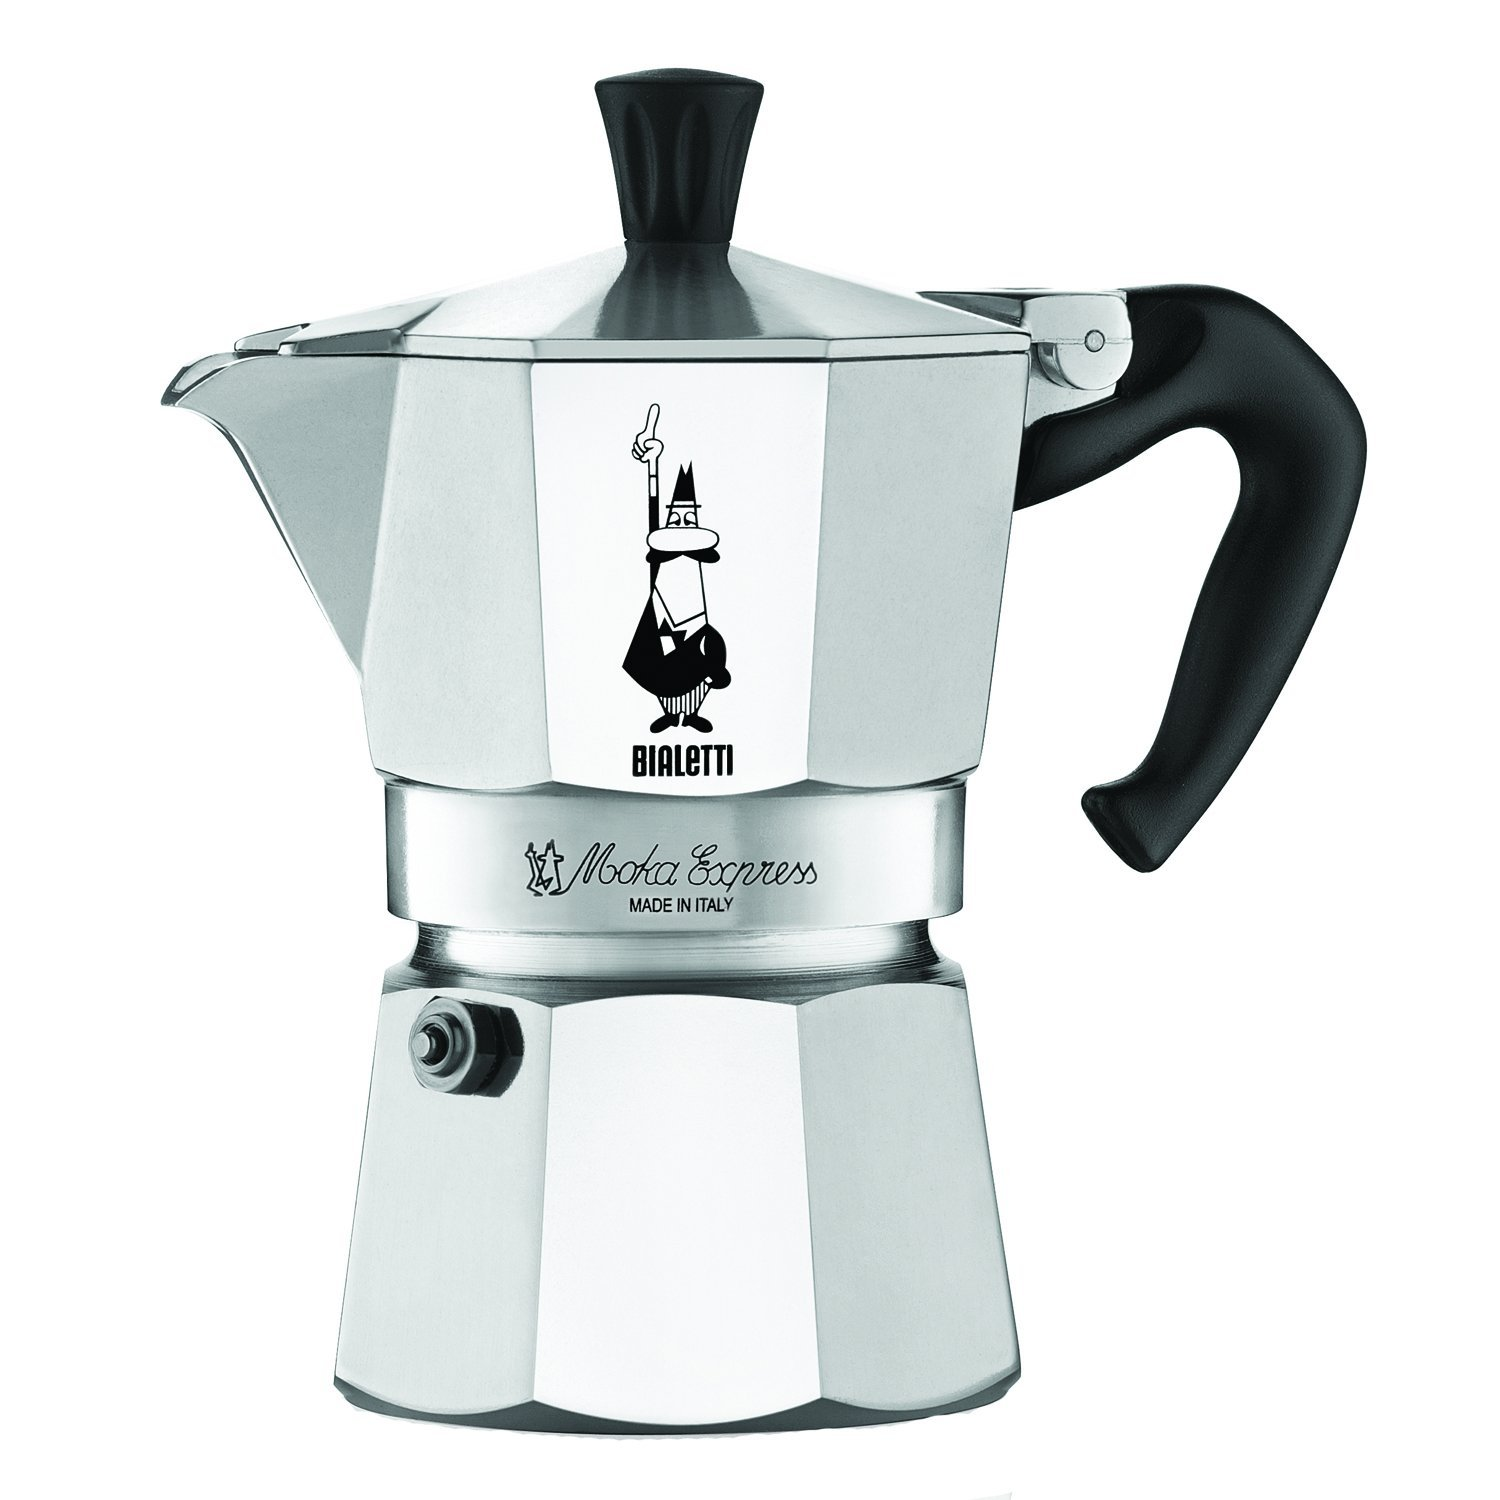 Bialetti coffee maker moka pot stovetop espresso maker How to make coffee with a coffee maker